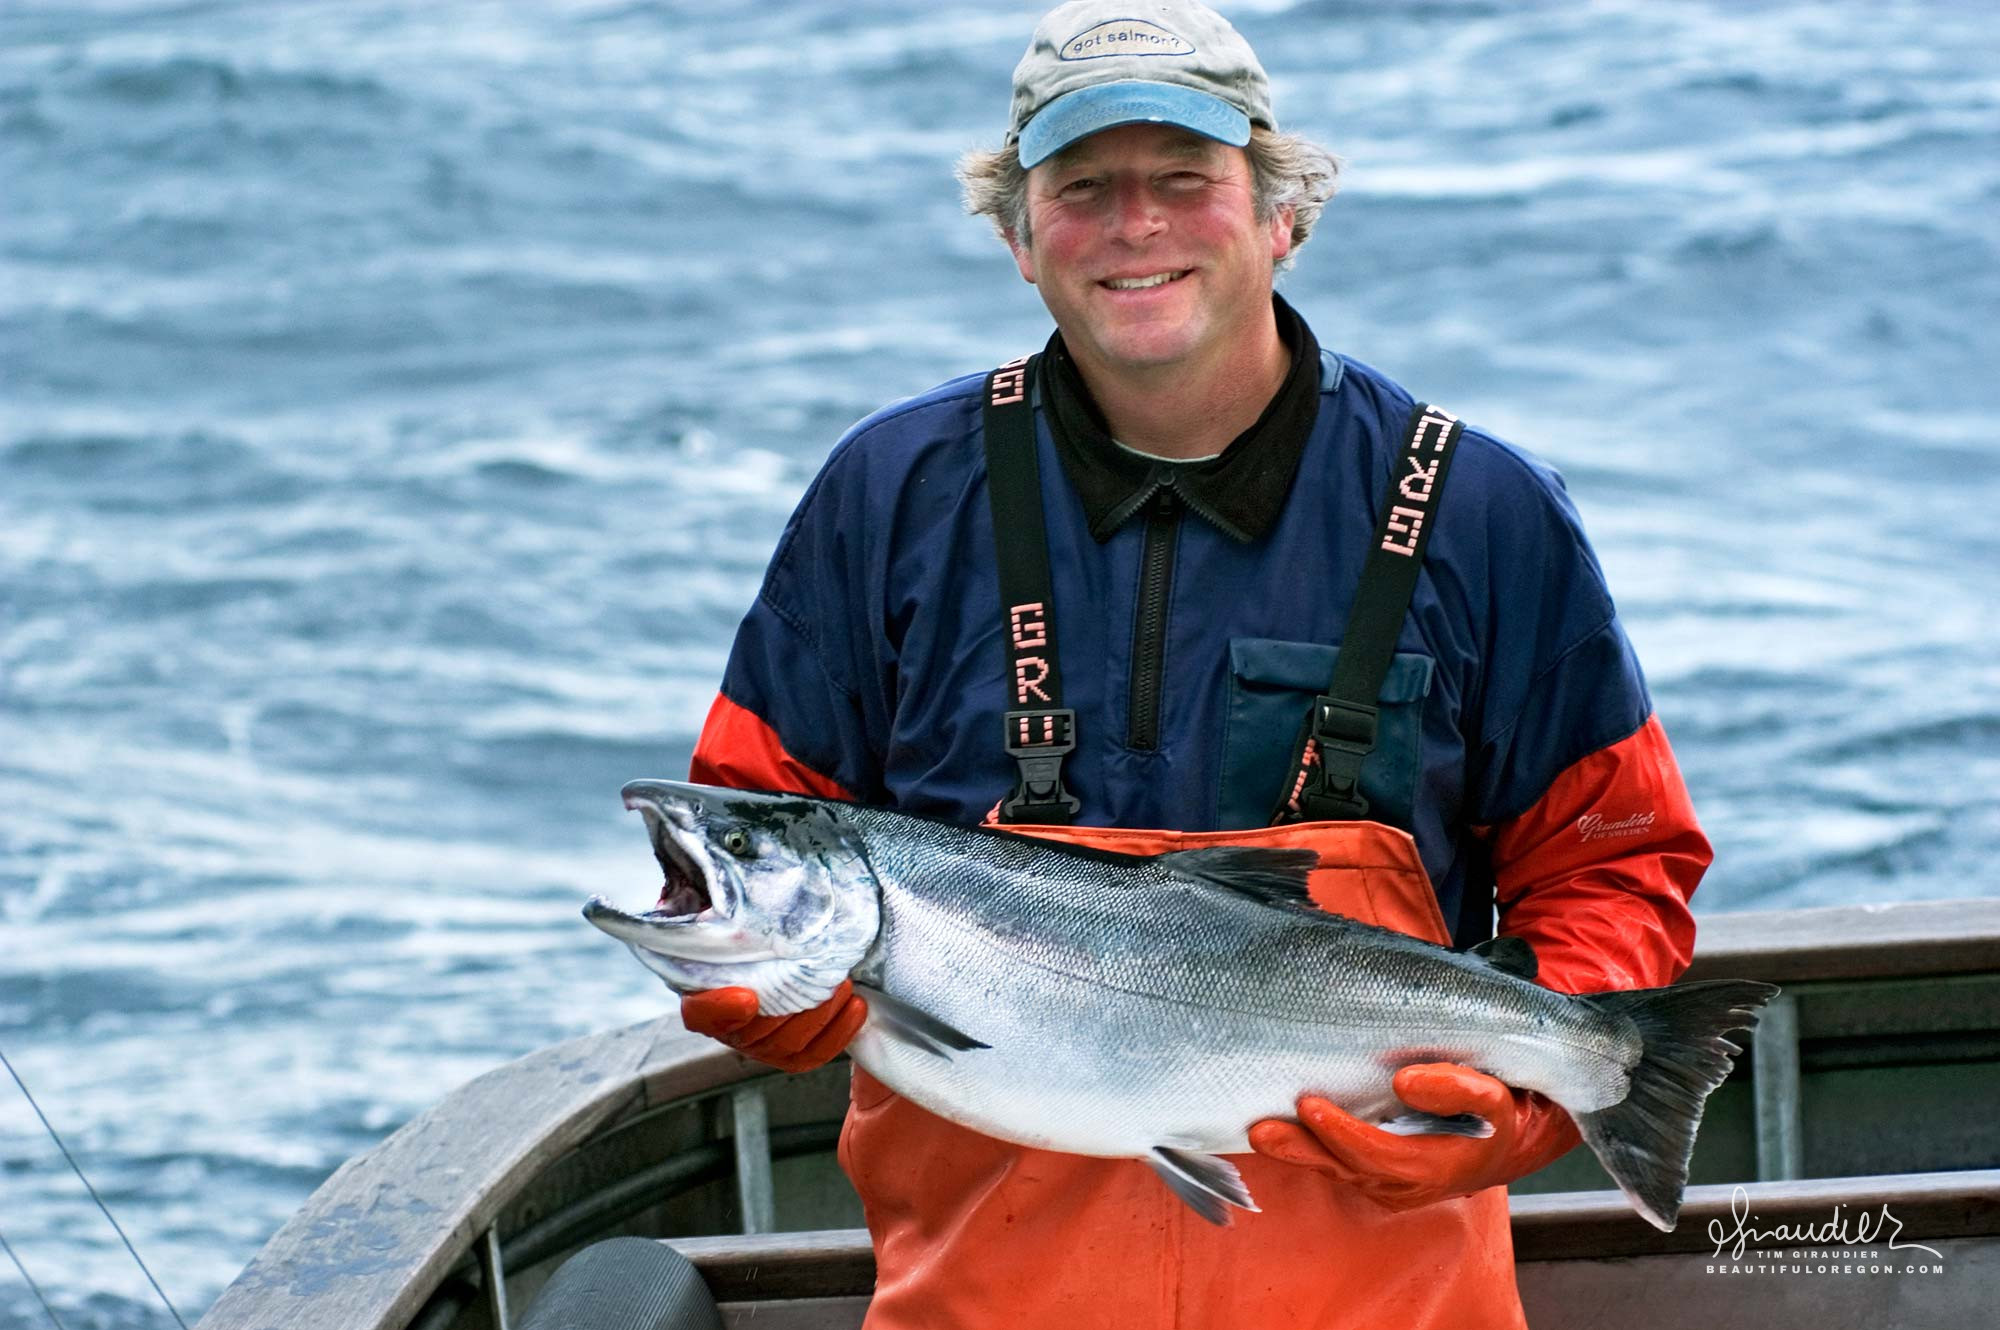 Rick Oltman, owner operator of F/V Cape Cleare Fisheries holds a late season silver salmon in the Gulf of Alaska. Commercial salmon troll fishery.